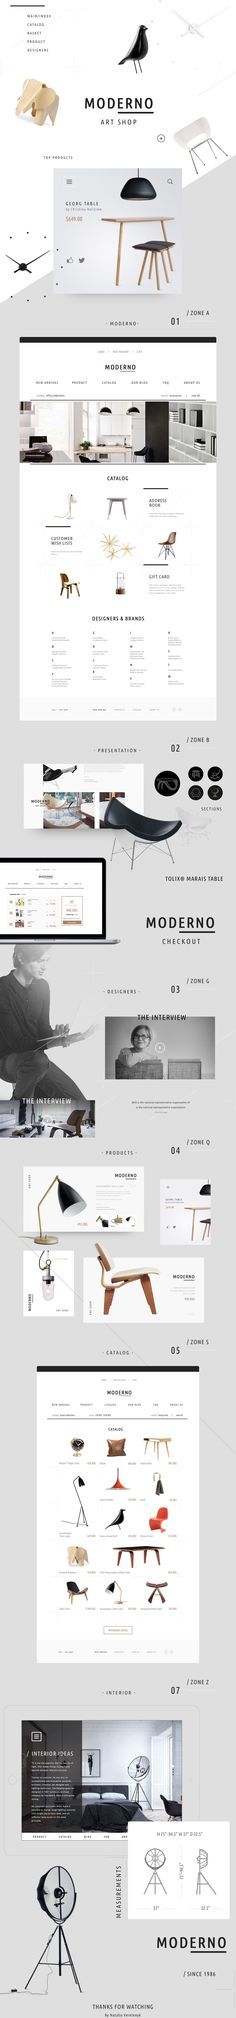 MODERNO is art shop dealing with furniture and accessories for home and office. The shop sells chairs, tables, desks, task lamps, etc. The store offers Herman Miller®, Stua, Line, Royal System®,  Quovis and other collections. Coming Soon. You are welcome